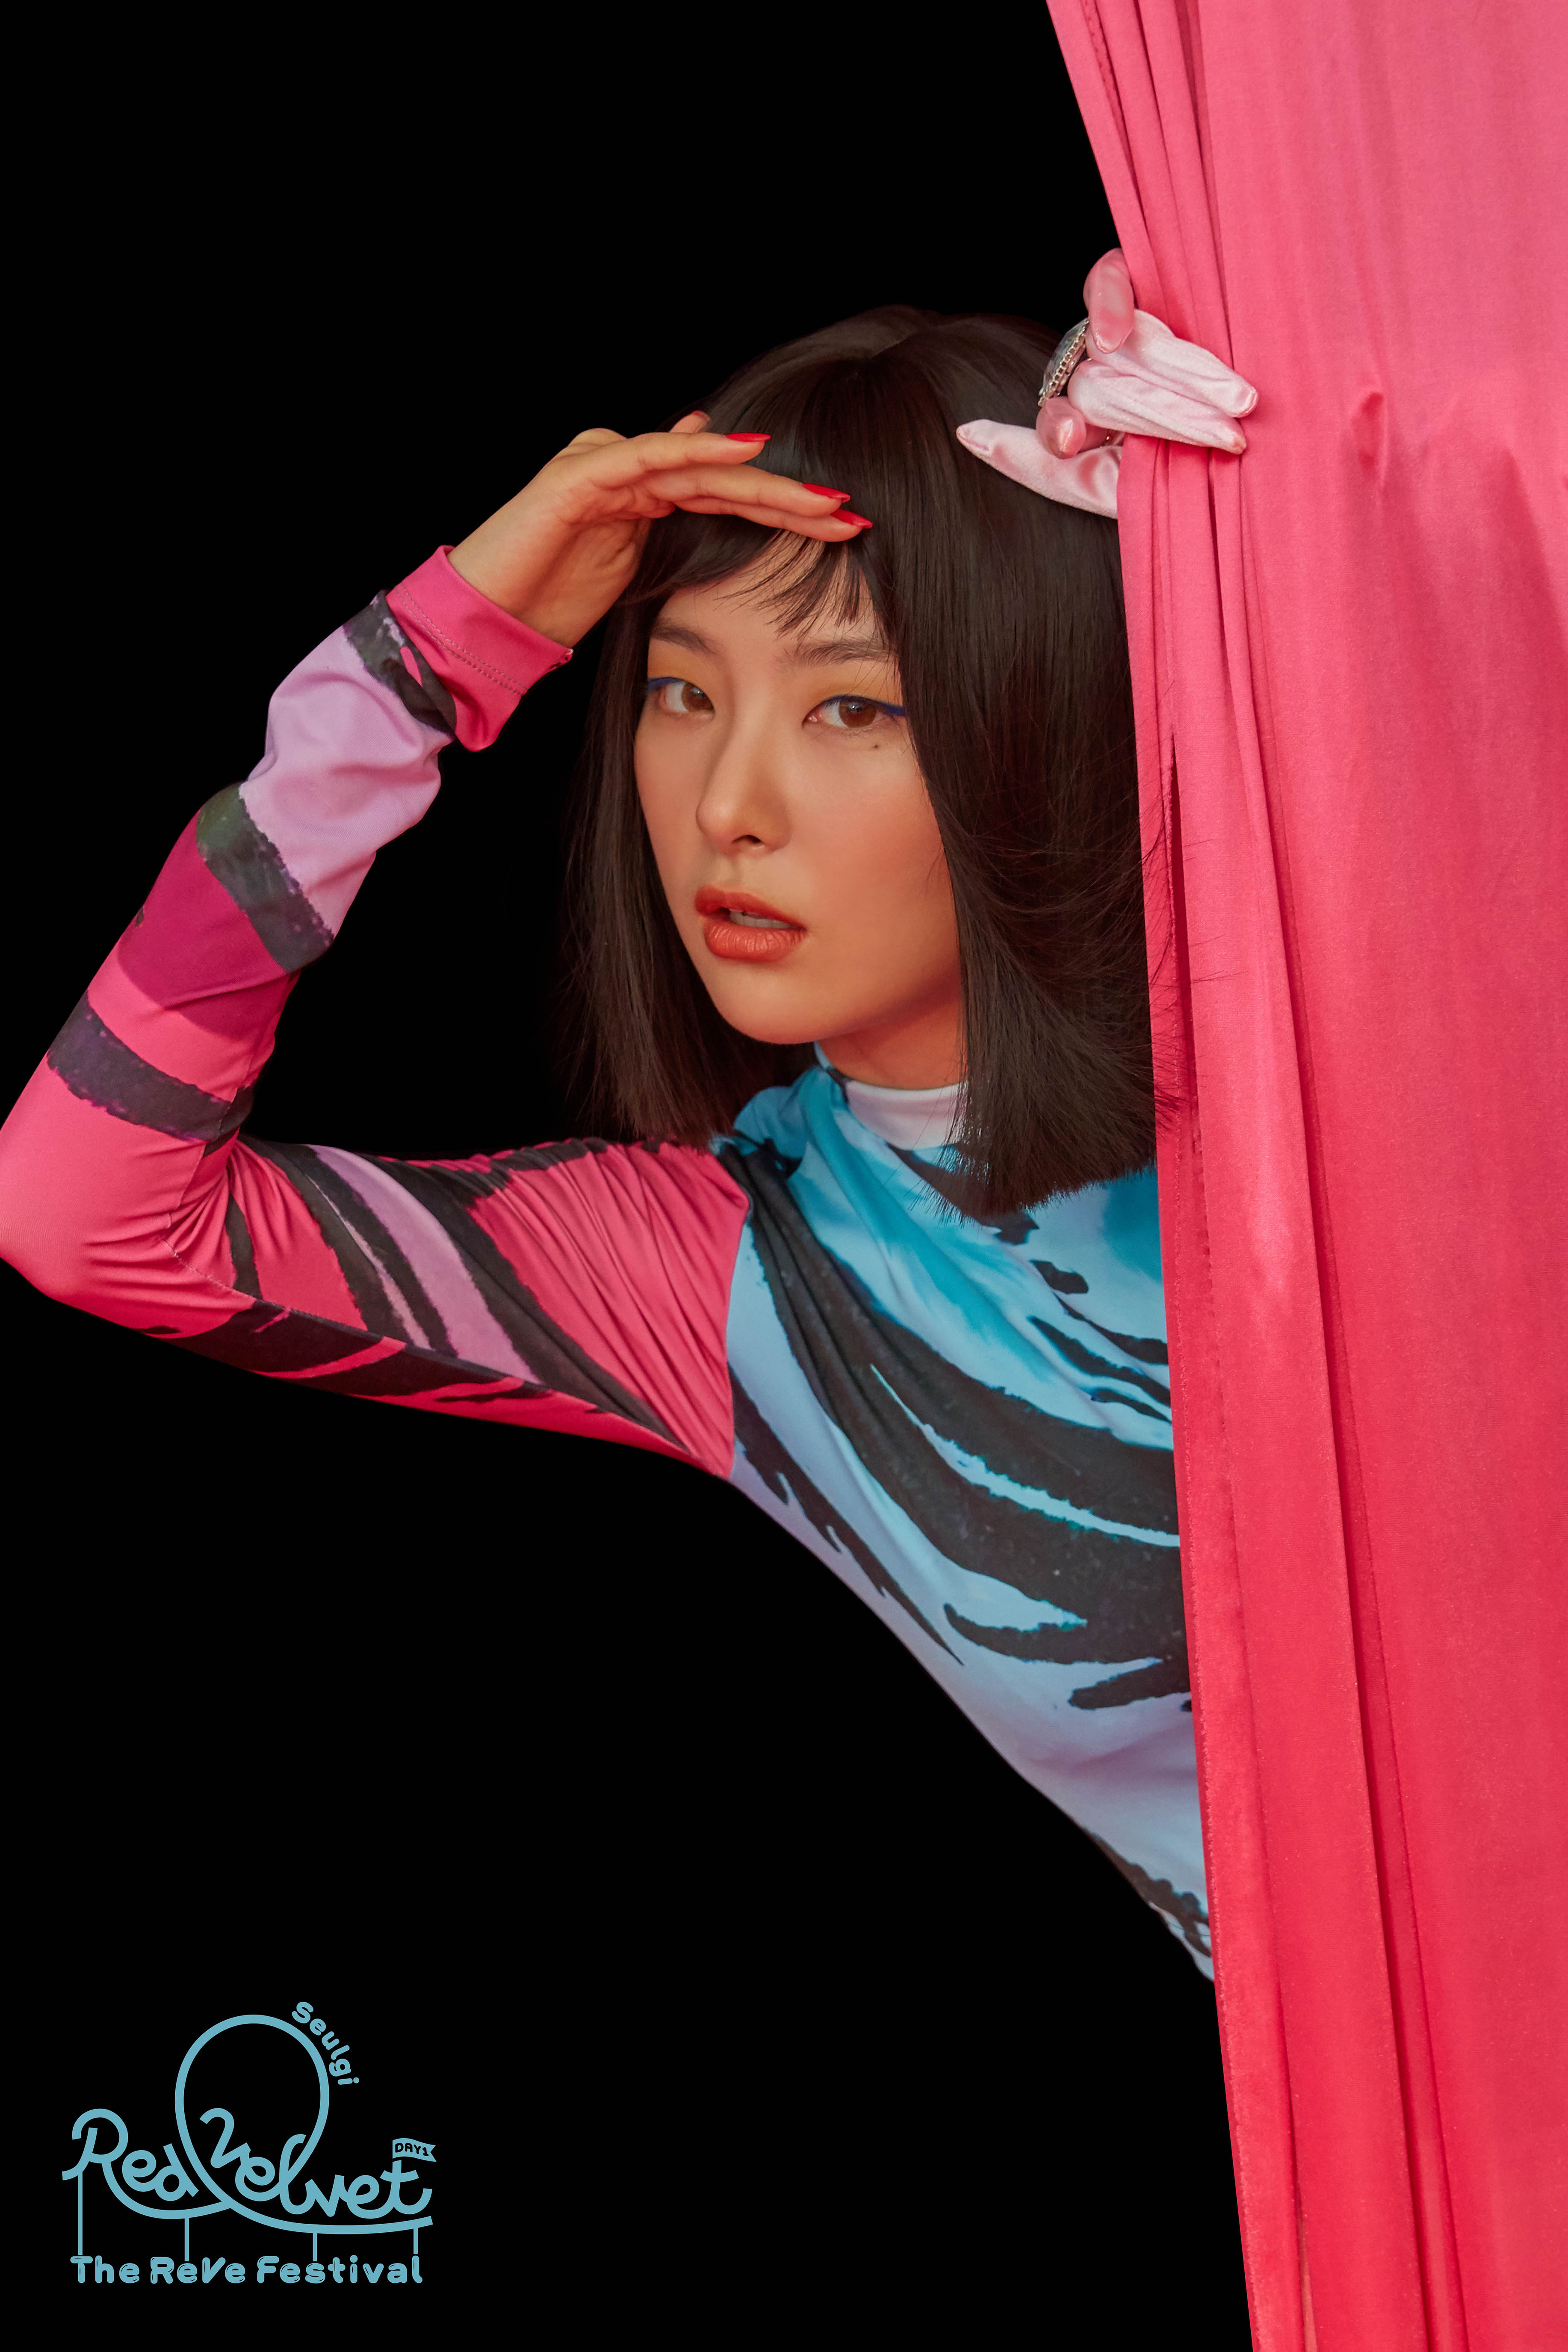 Red Velvet – ReVe Festival Day 1 Seulgi Teaser Photos (HD/HR)